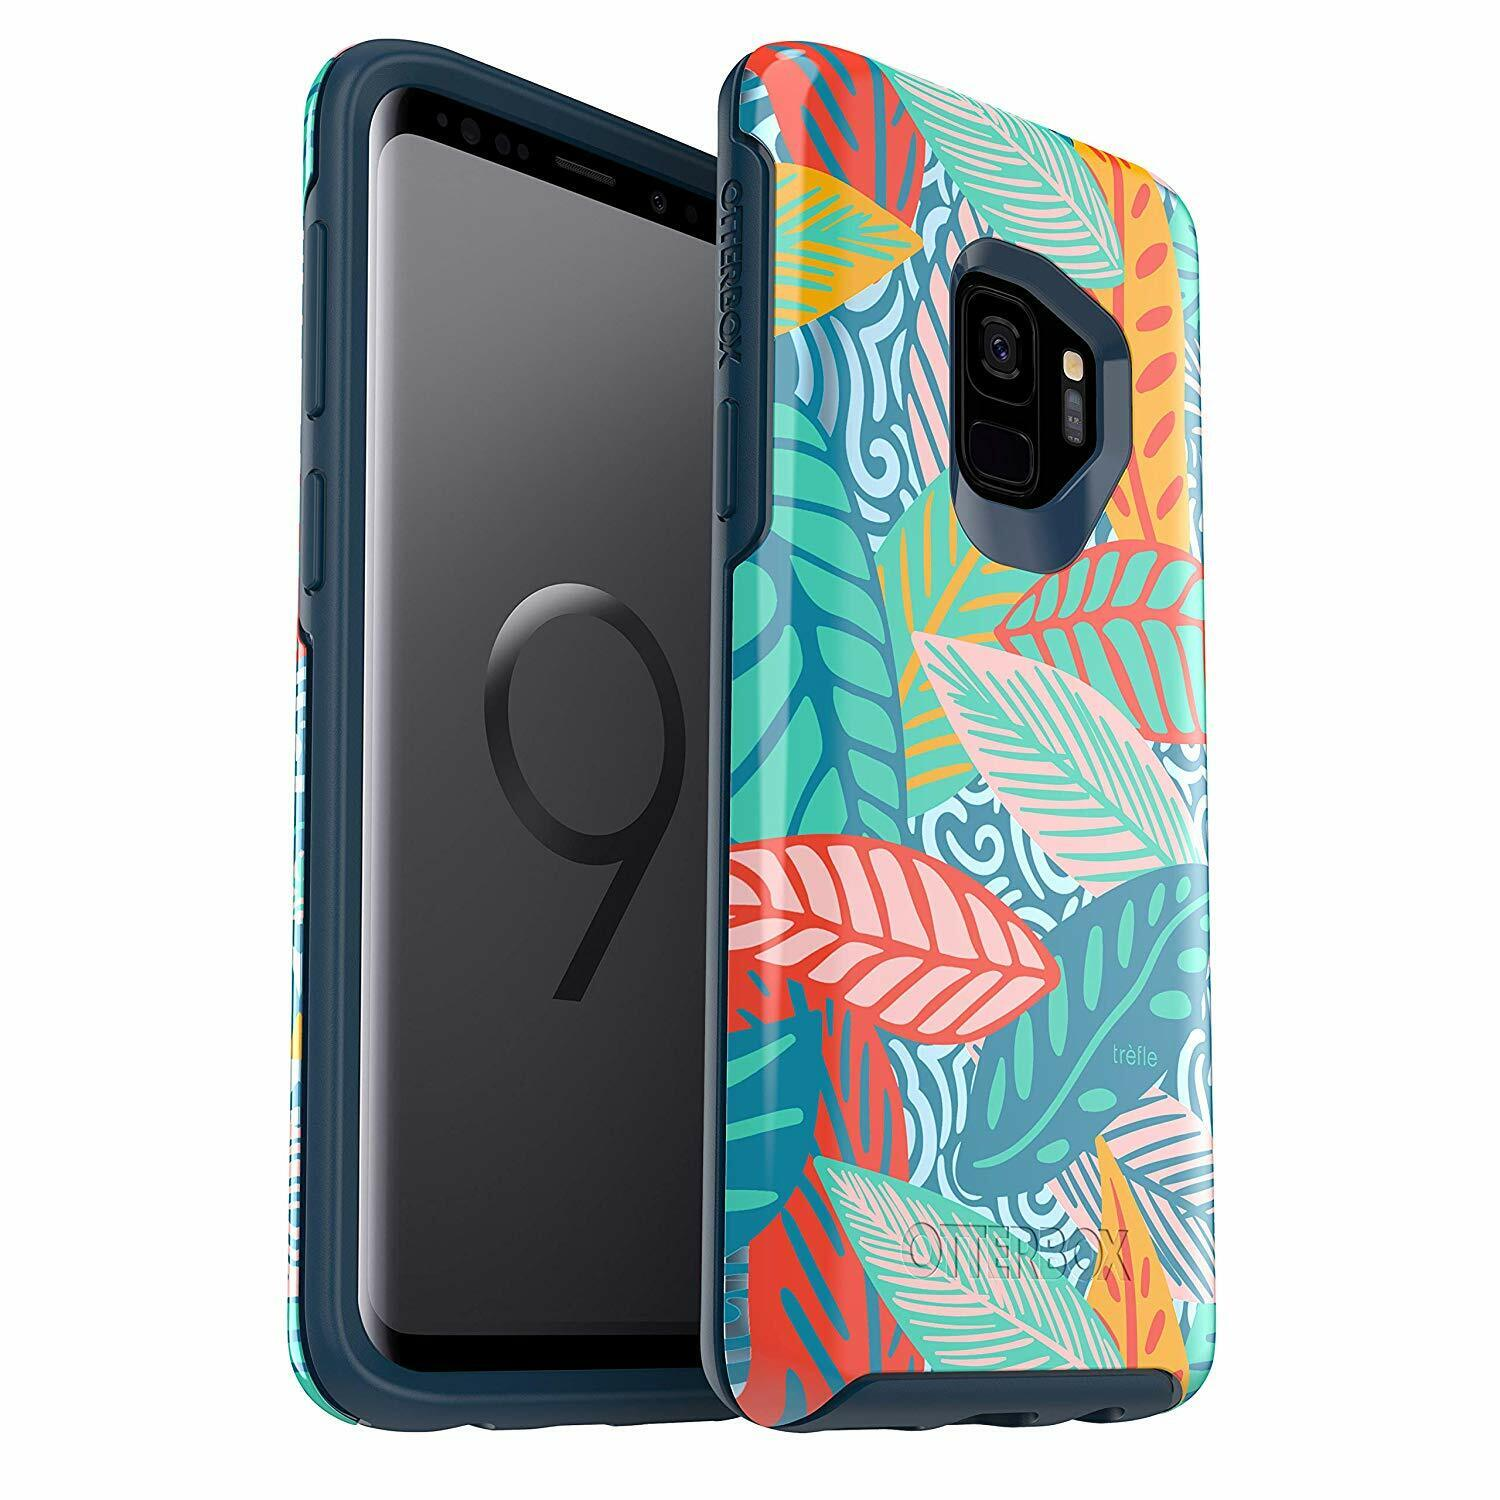 OtterBox Symmetry Series Case for Samsung Galaxy S9 - Retail Packaging - Anegada